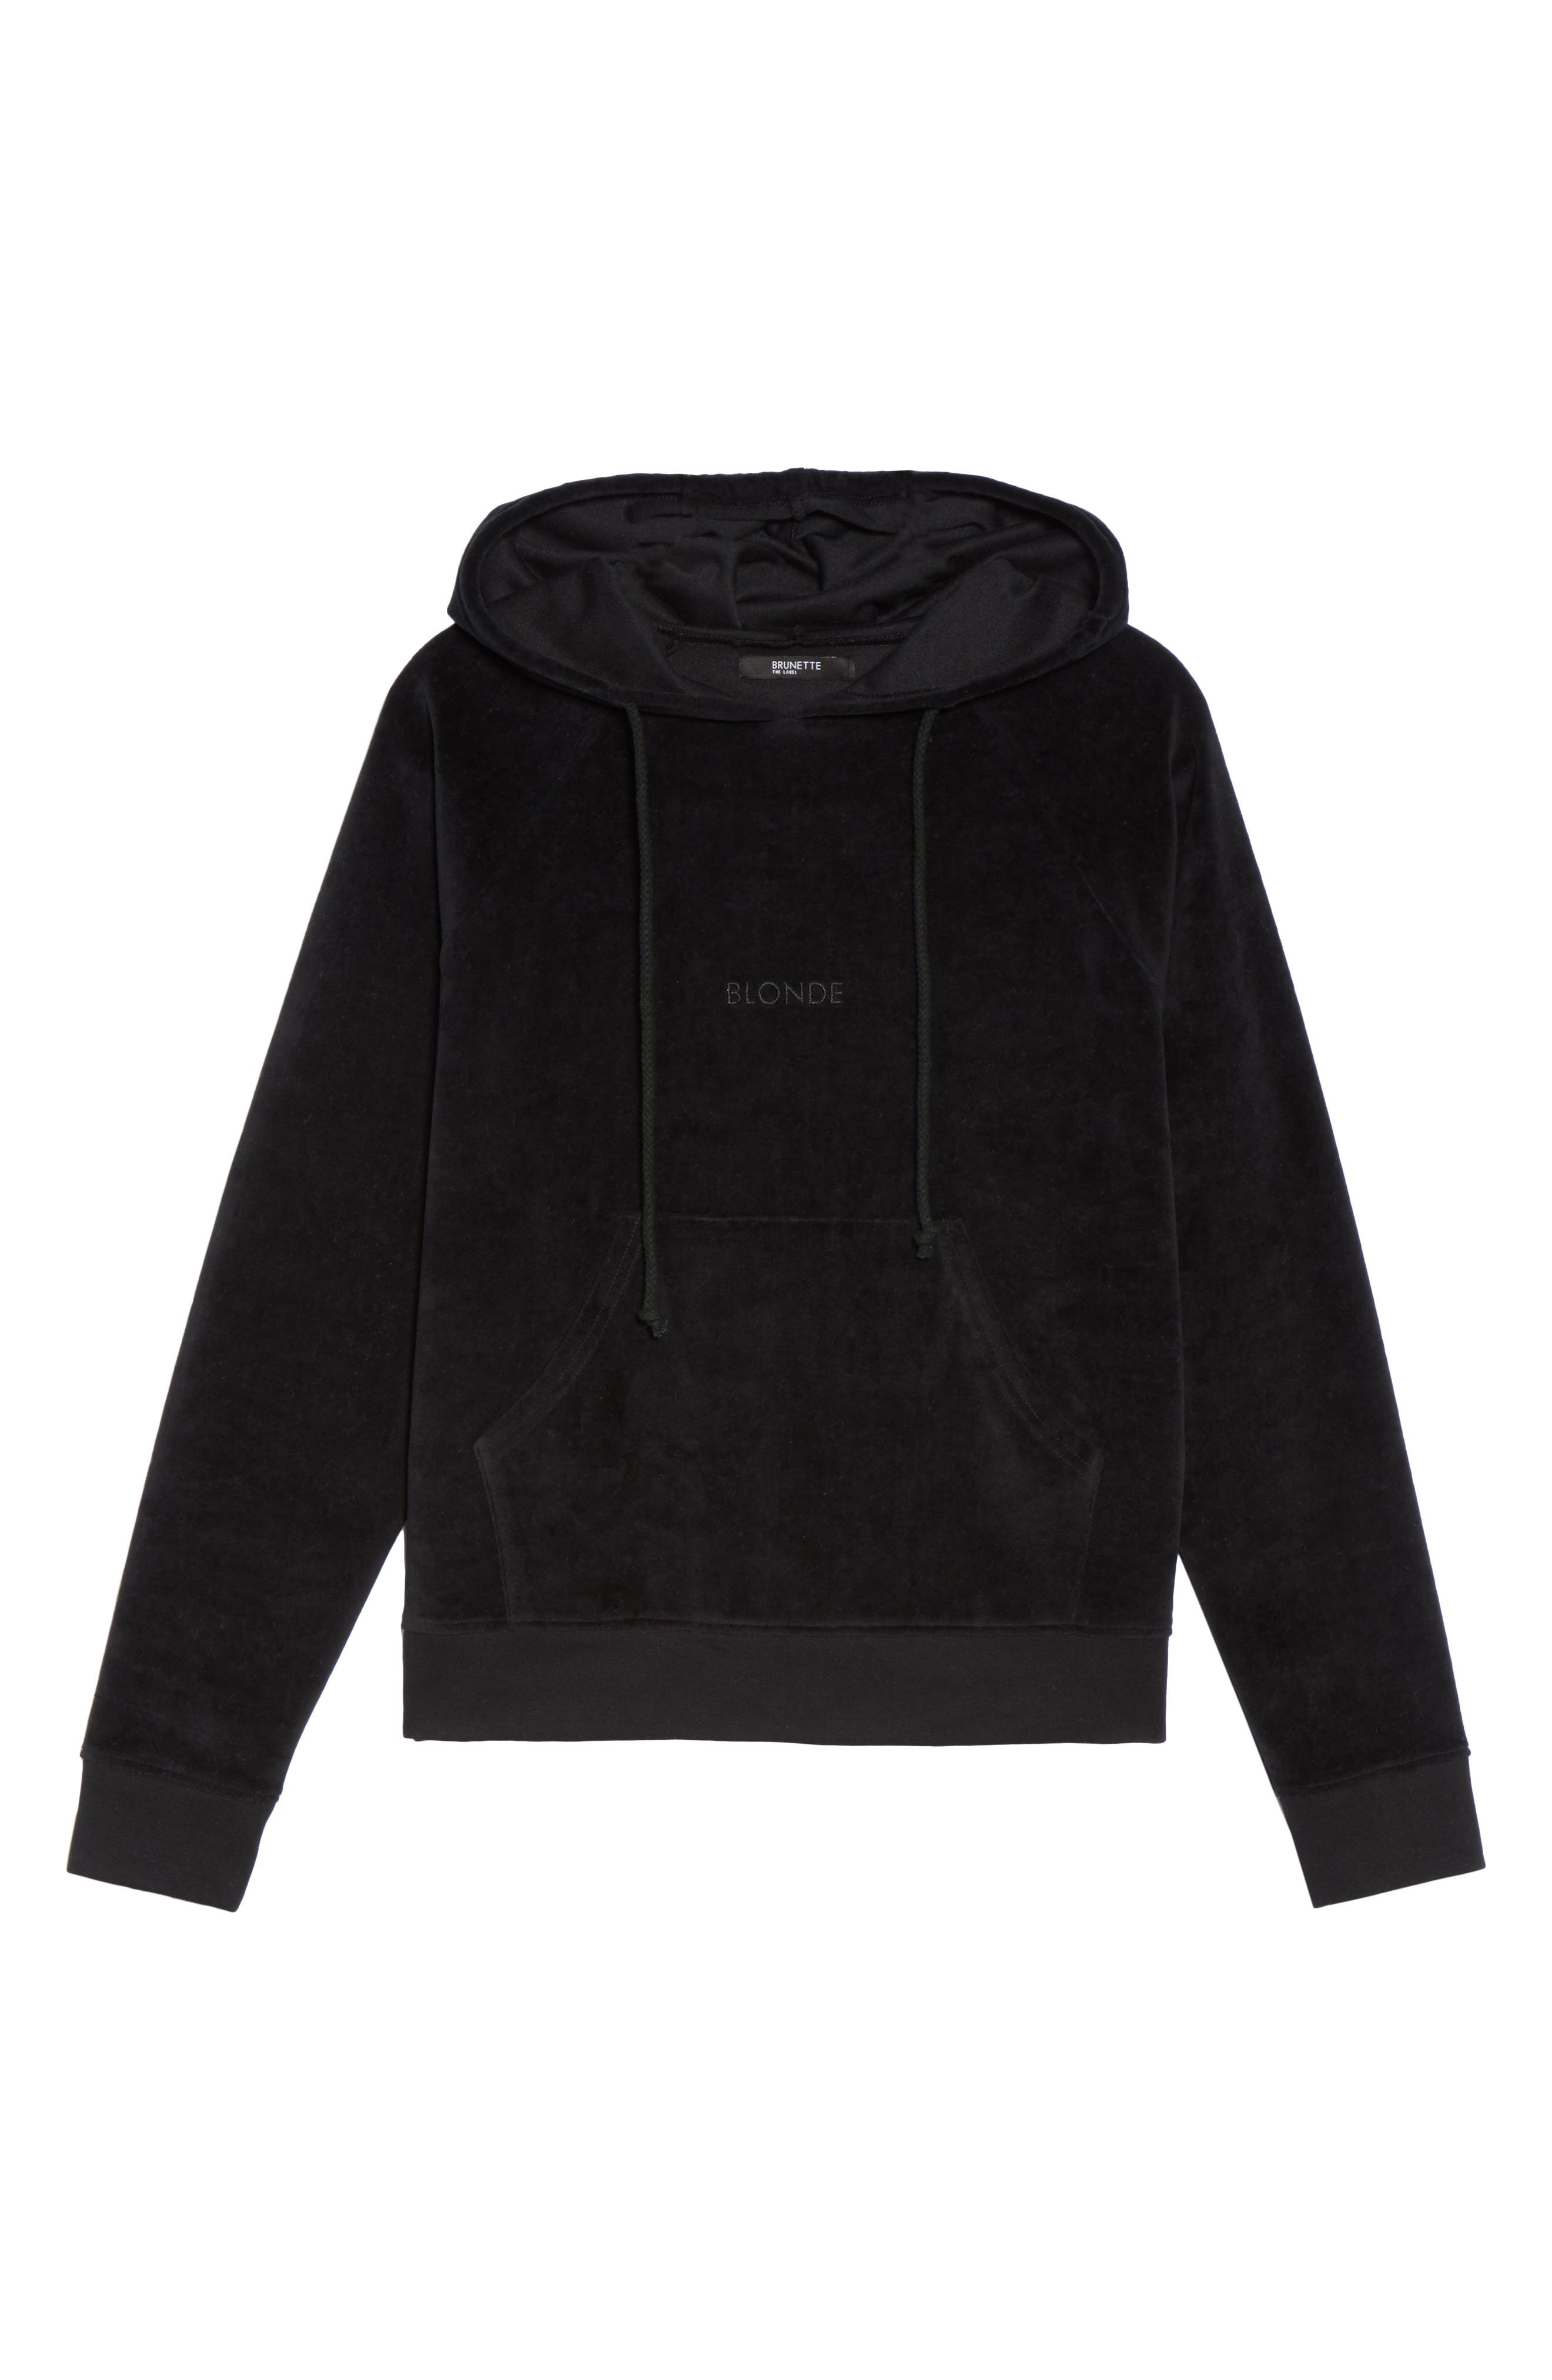 Blonde Embroidered Velour Hoodie,                             Alternate thumbnail 4, color,                             Black